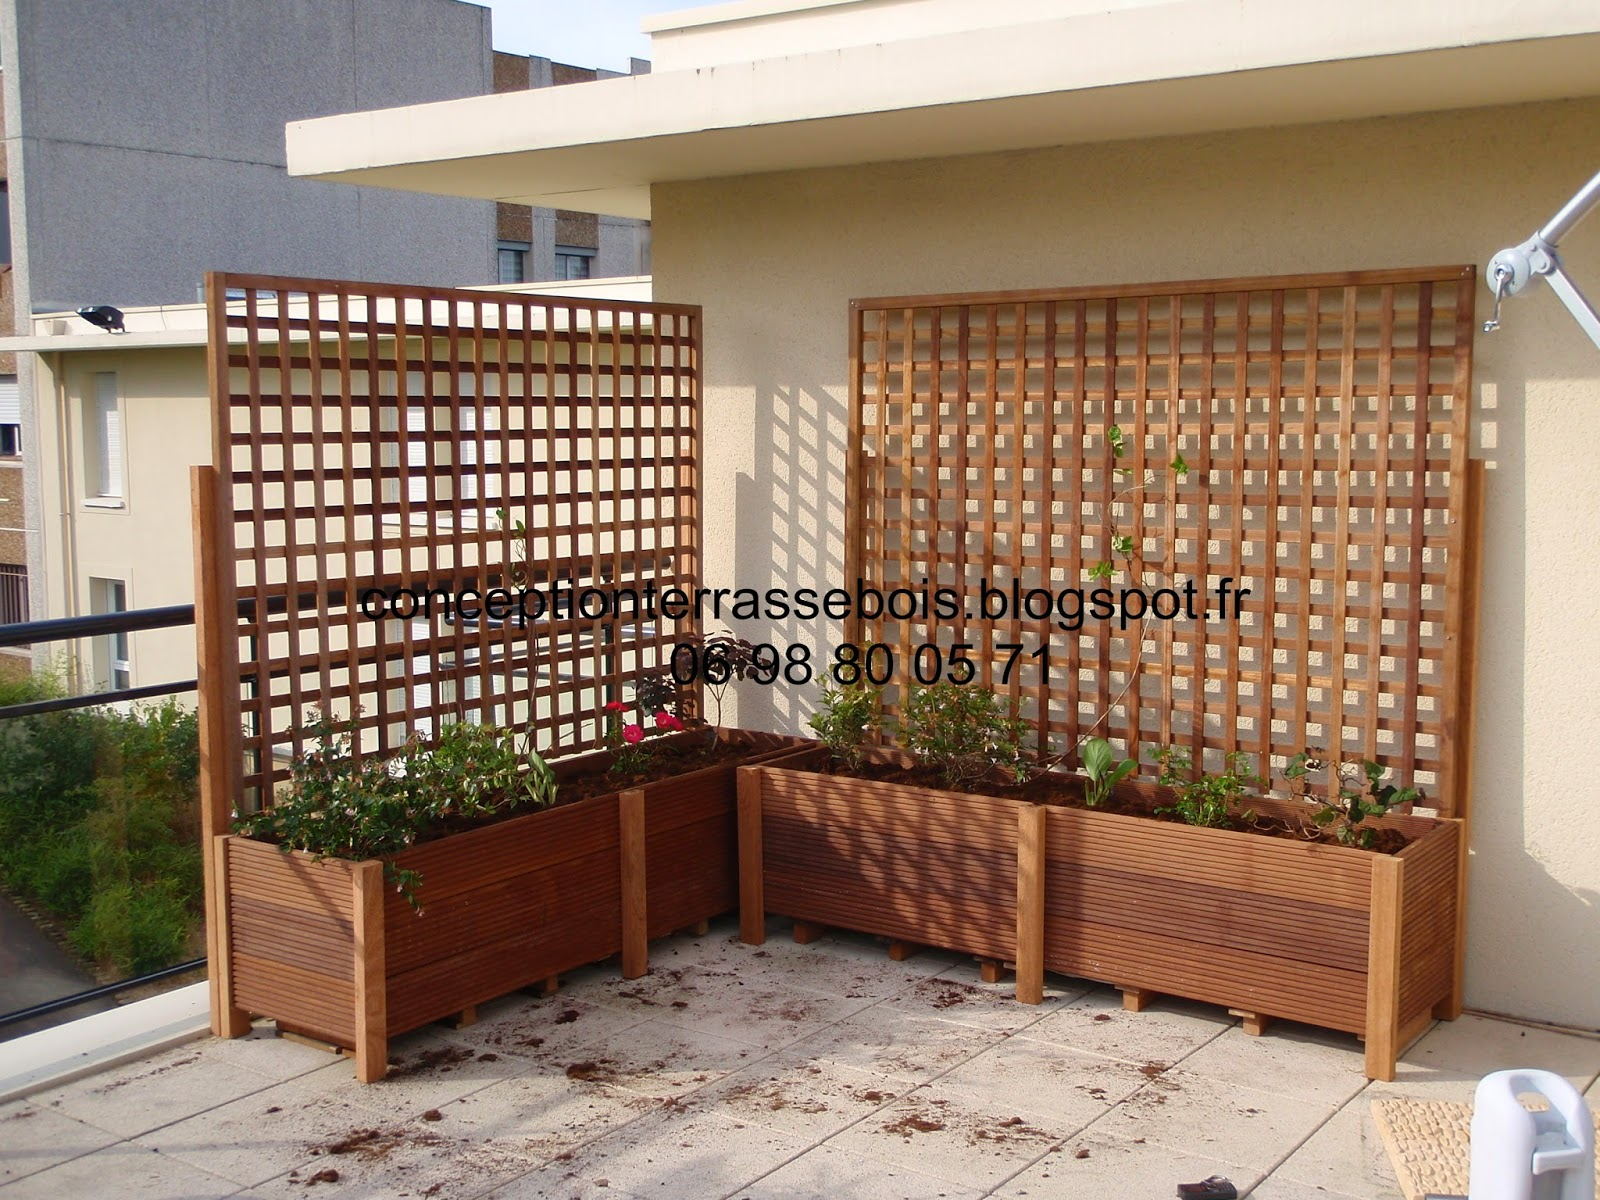 conception d 39 une terrasse en bois am nagement de balcon et terrasse. Black Bedroom Furniture Sets. Home Design Ideas